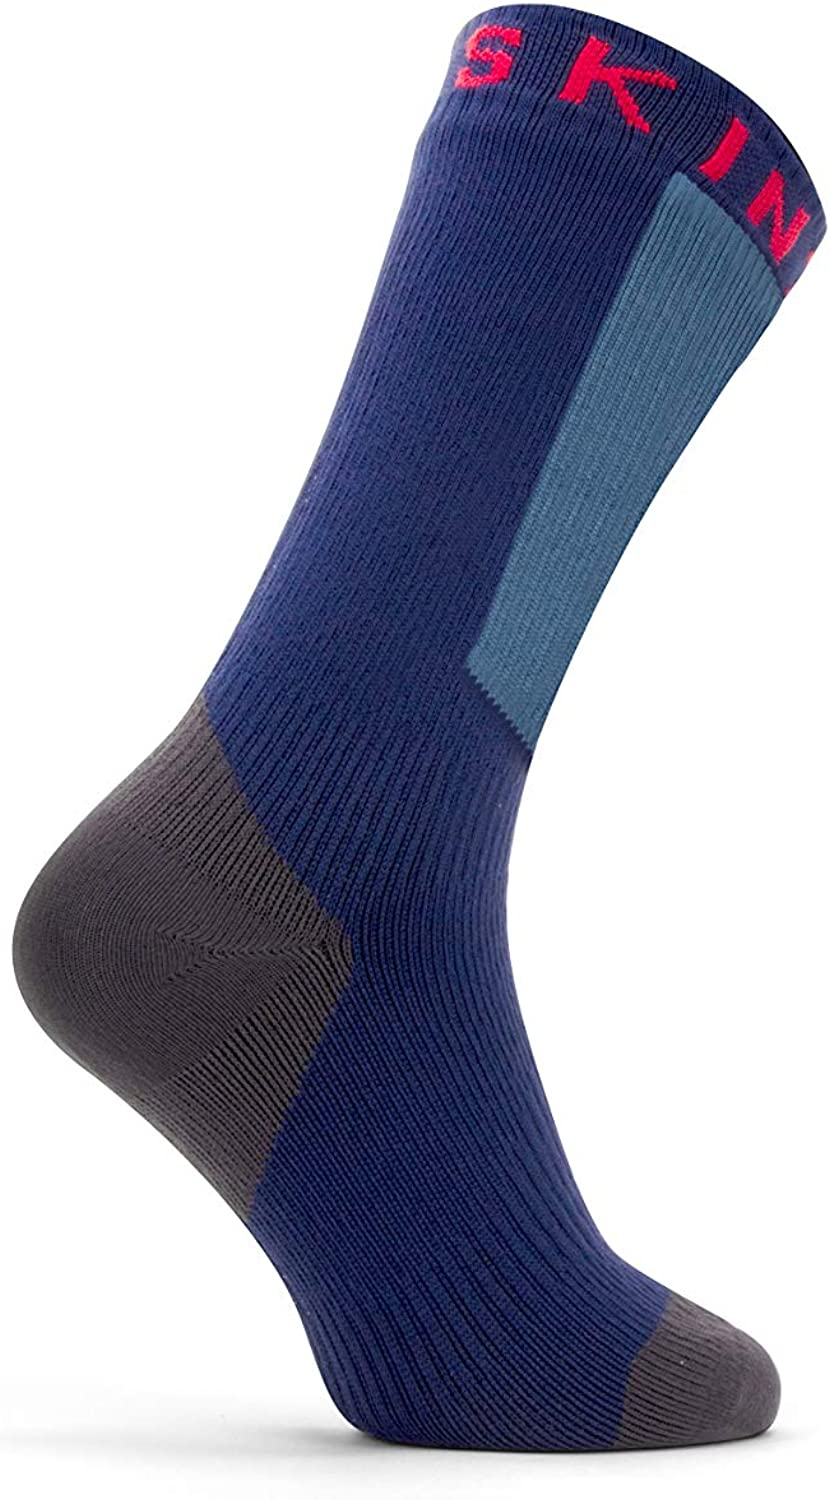 Large Navy Blue SealSkinz Unisex-Adult Waterproof Warm Weather Mid Length Sock with Hydrostop